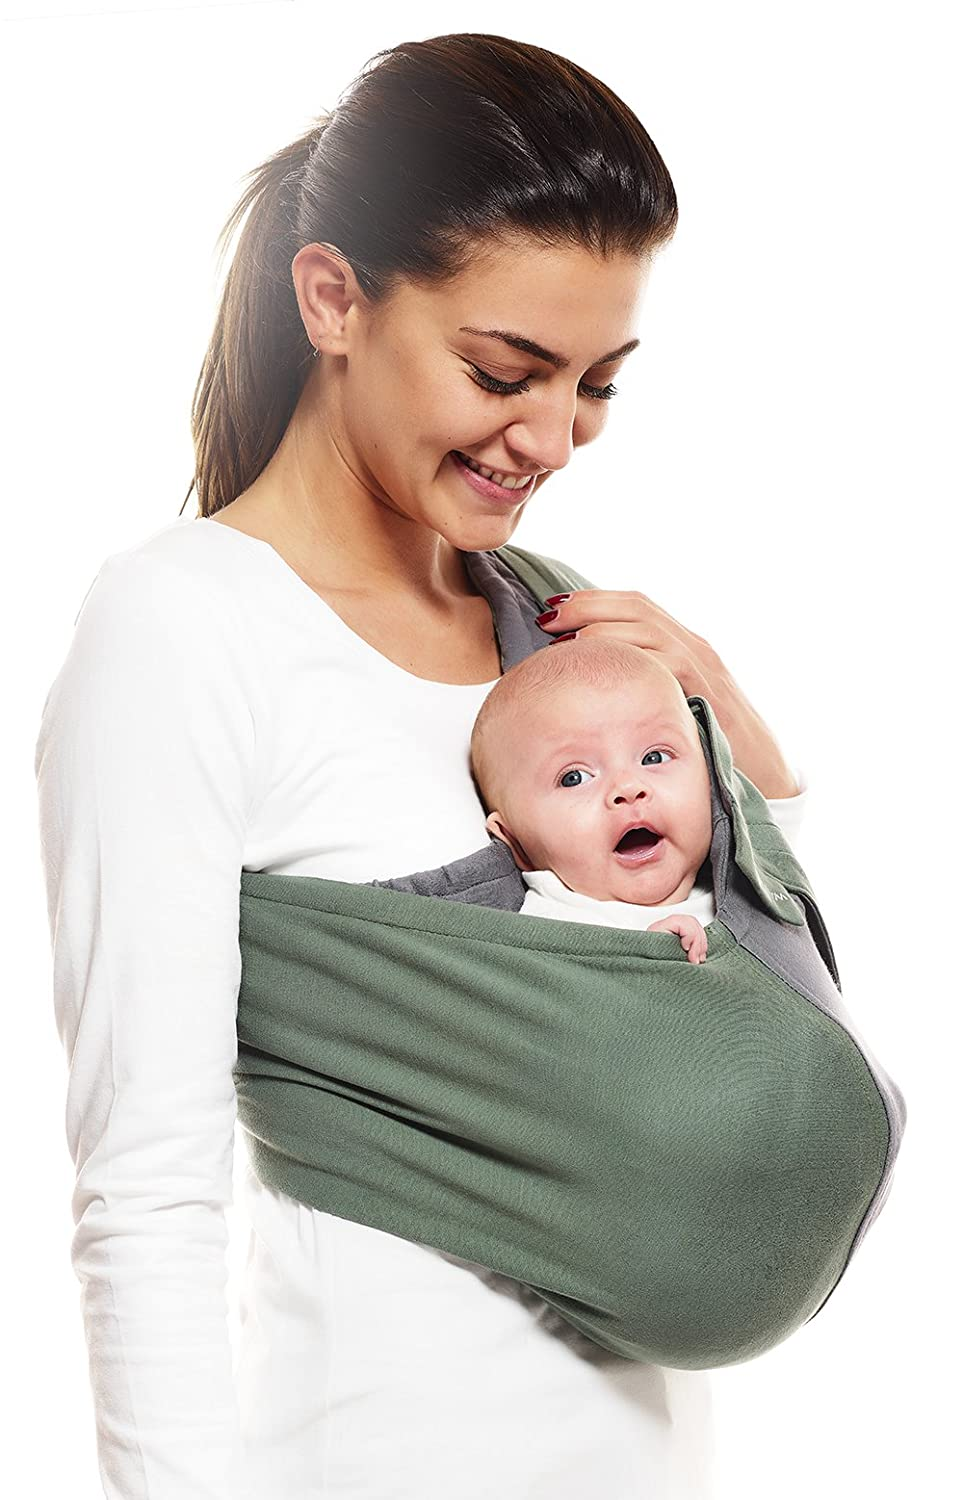 Wallaboo Wrap Sling Carrier Connection, Easy Adjustable, Ergonomic, 3 Carrying Positions, Newborn 8lbs to 33 lbs, Soft Breathable Cotton, 3 Sitting Positions, EU Safety Tested, Color: Black